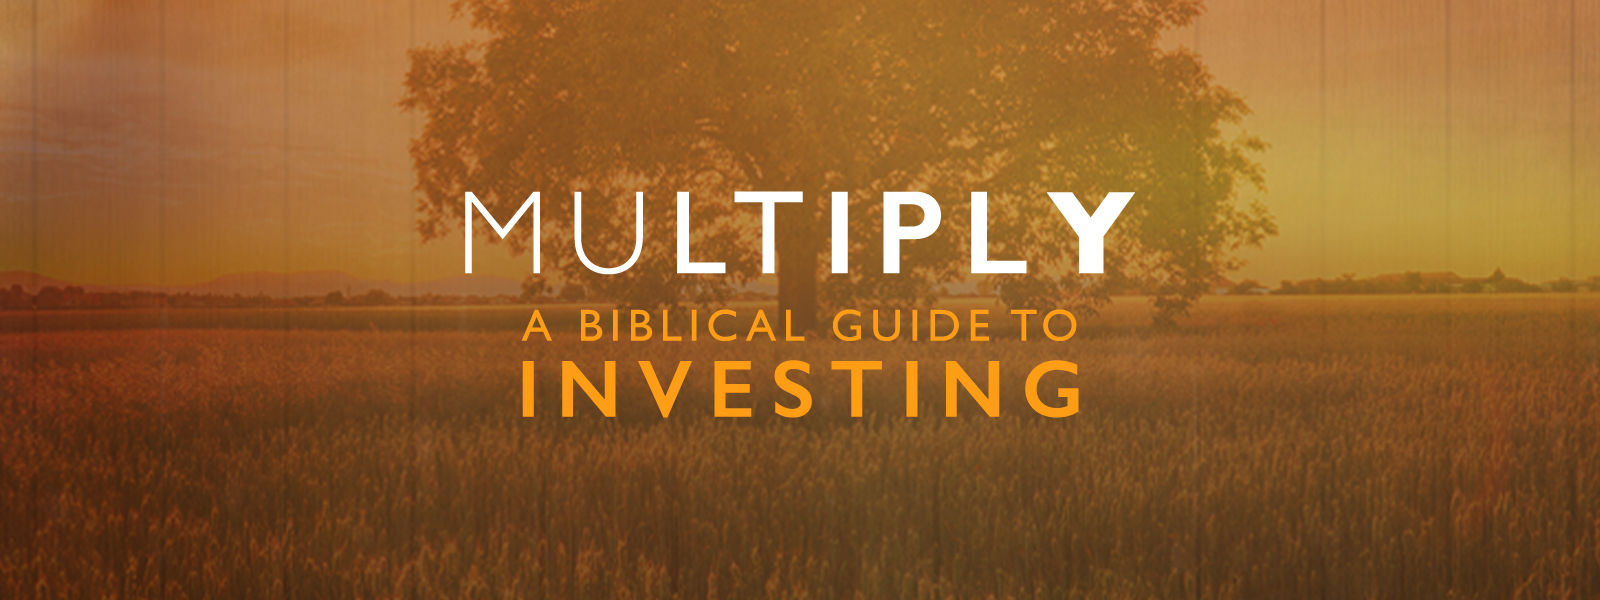 Multiply: A Biblical Guide to Investing